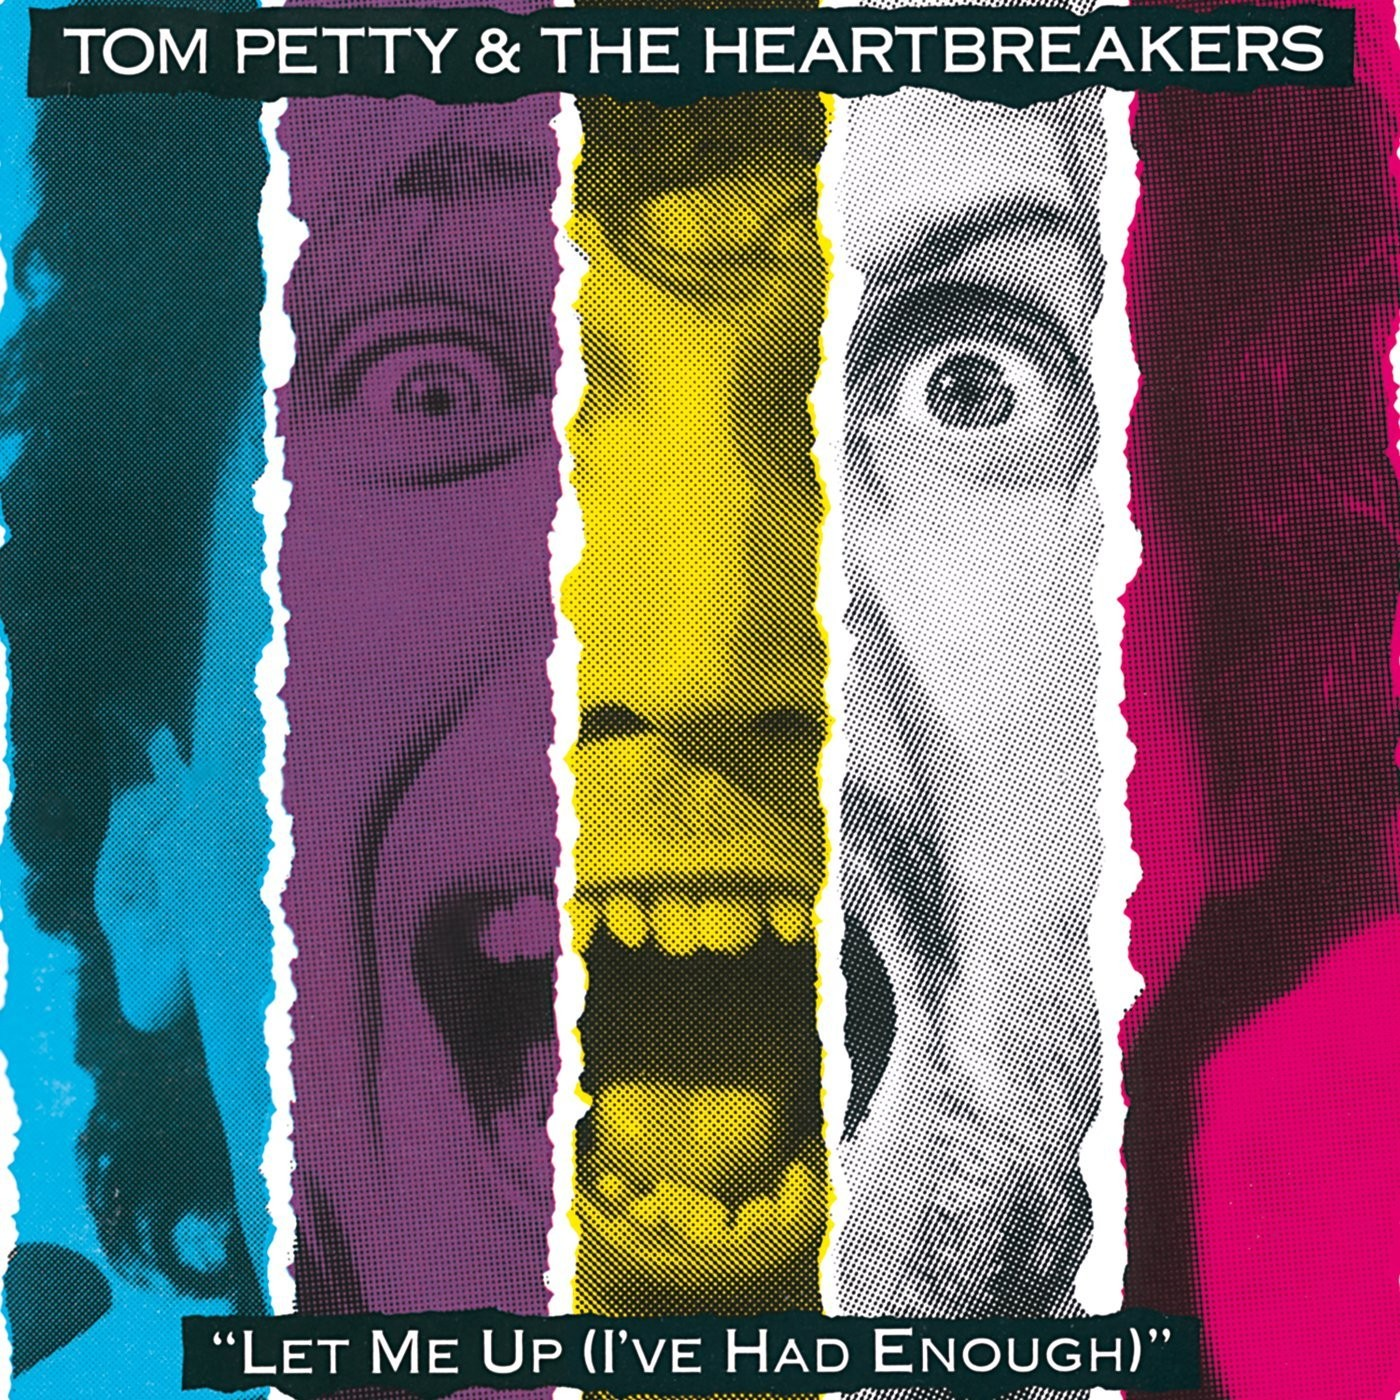 Tom Petty - Let Me Up (I've Had Enough) LP